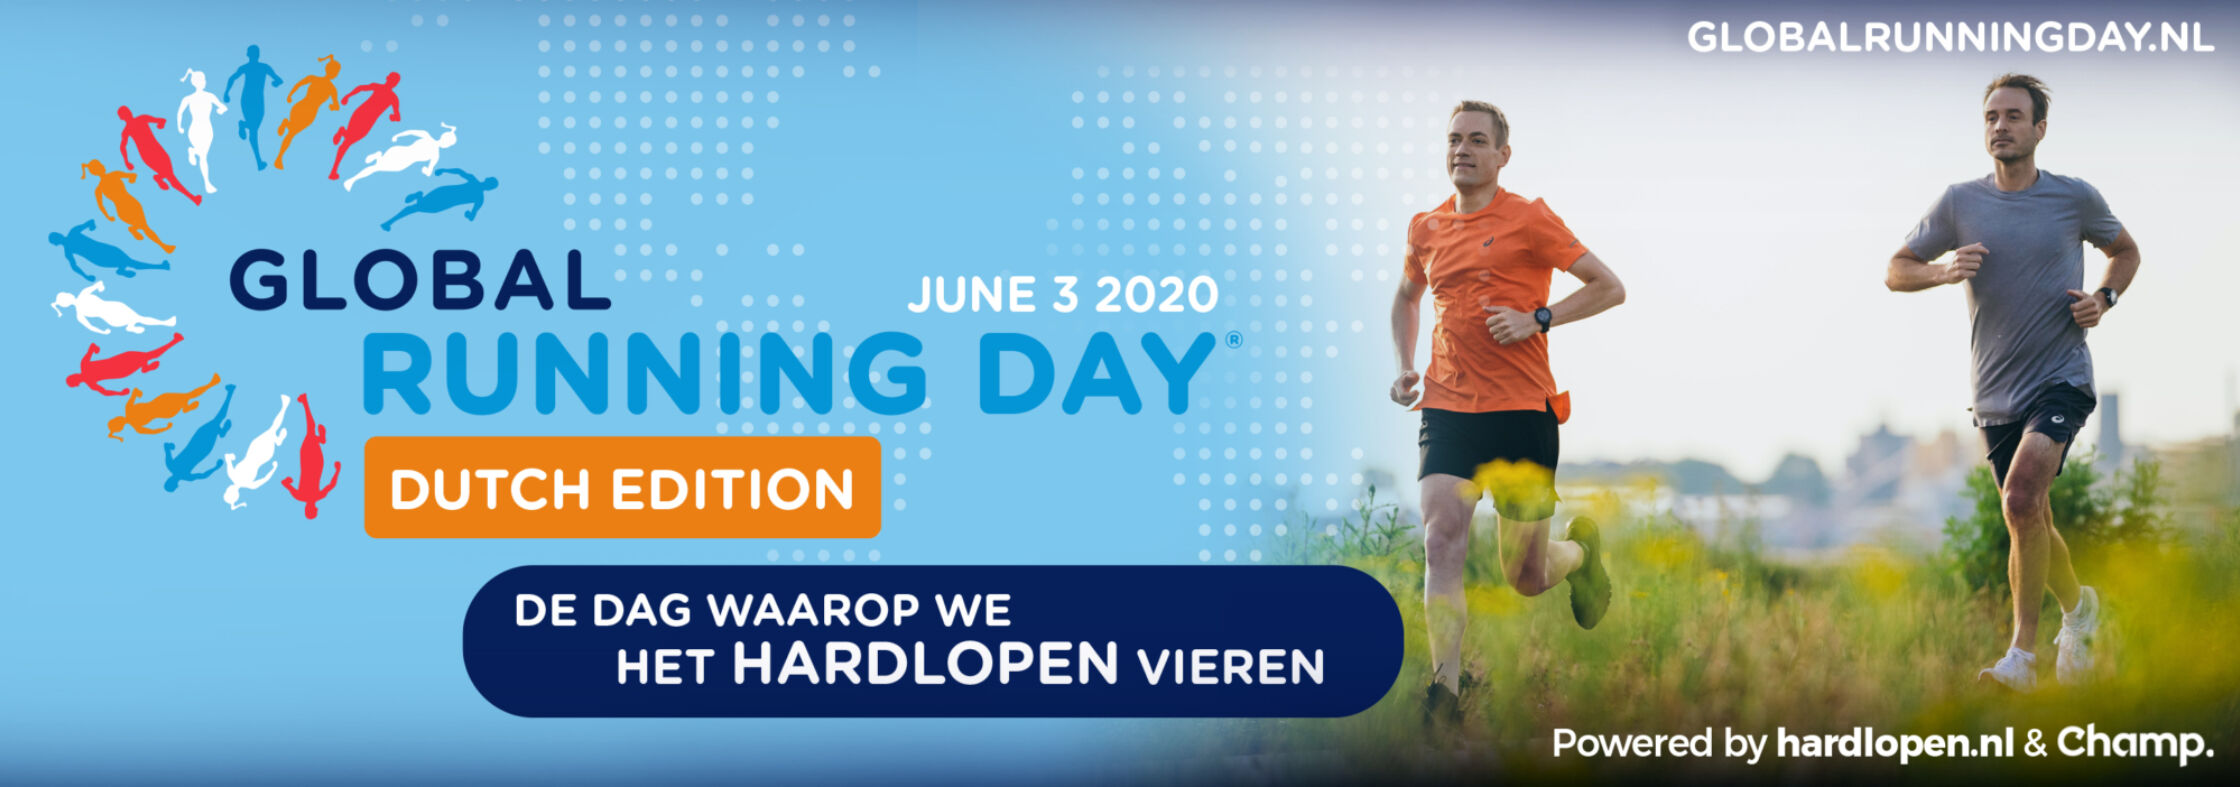 Ruim 1100 Nederlanders in de stemming voor Global Running Day